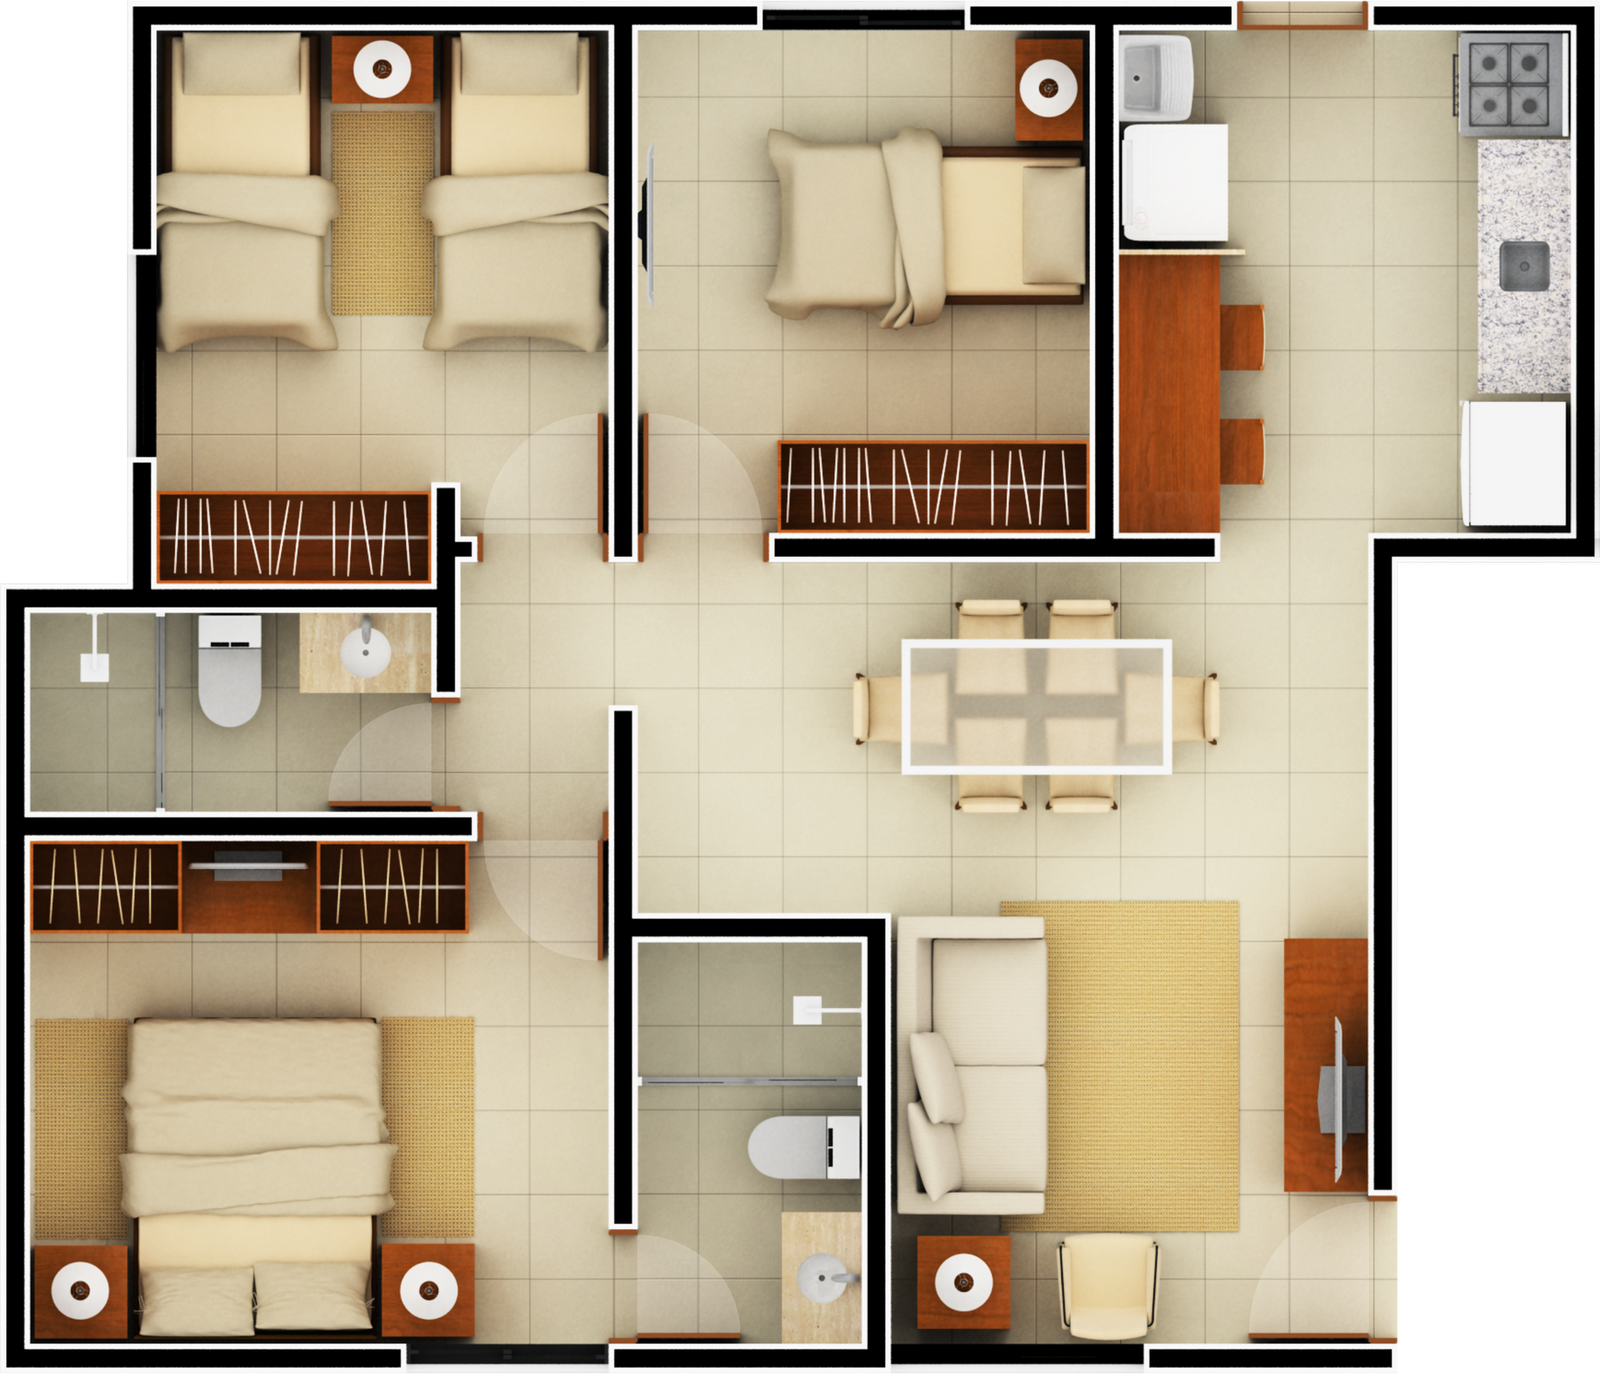 Bedroom Layout For